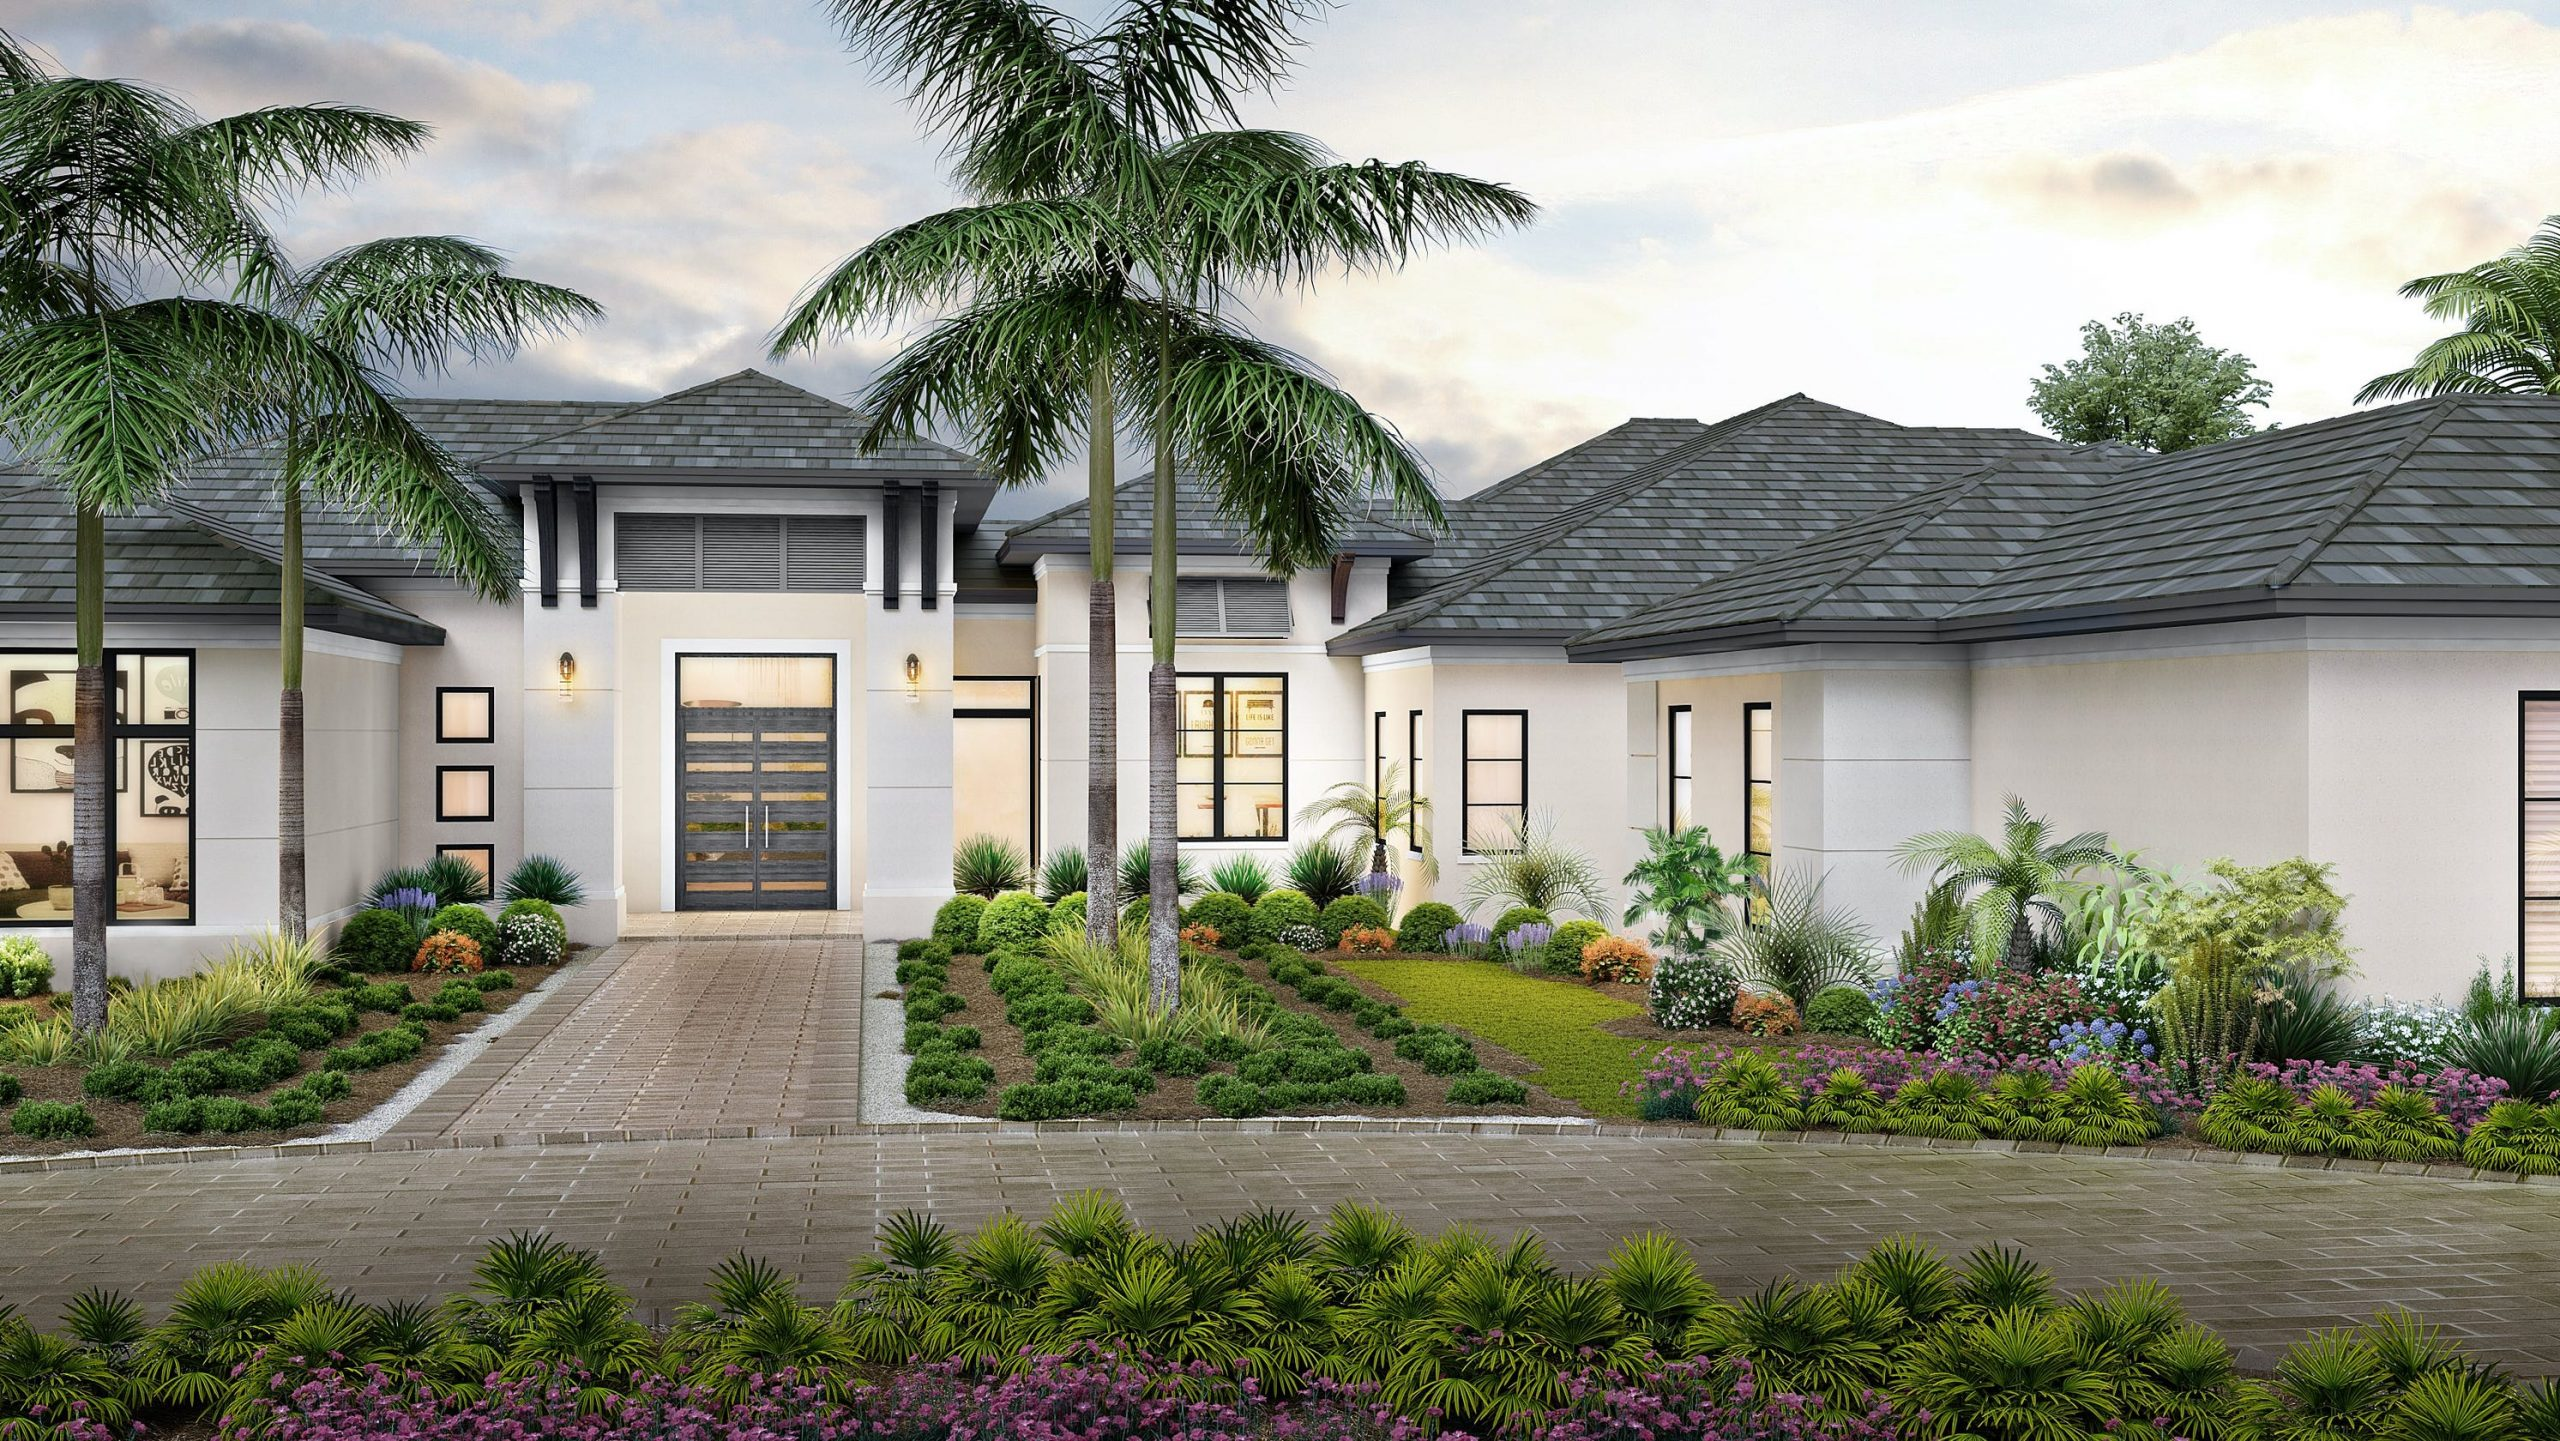 Seagate's Oak Hill model available for viewing and purchase at Quail West